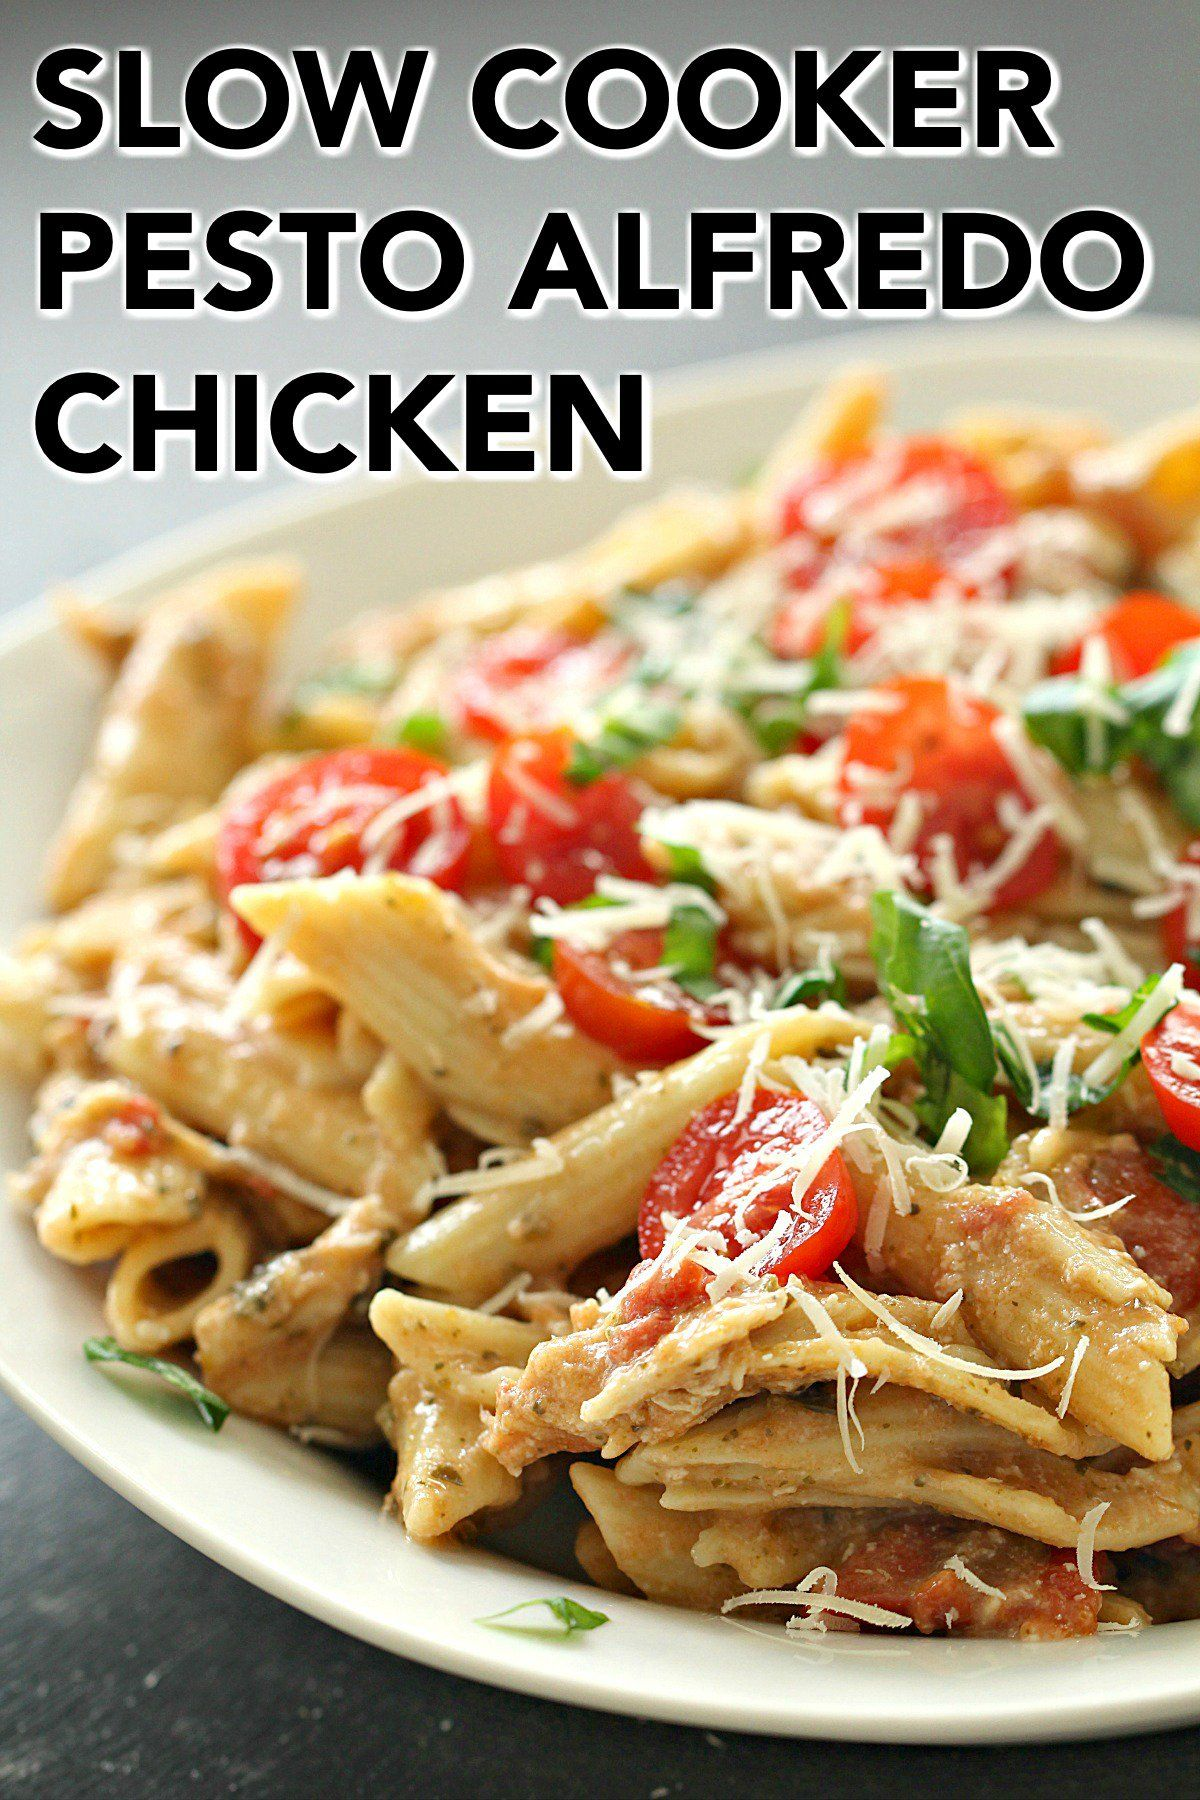 Slow Cooker Pesto Alfredo Chicken and Pasta images